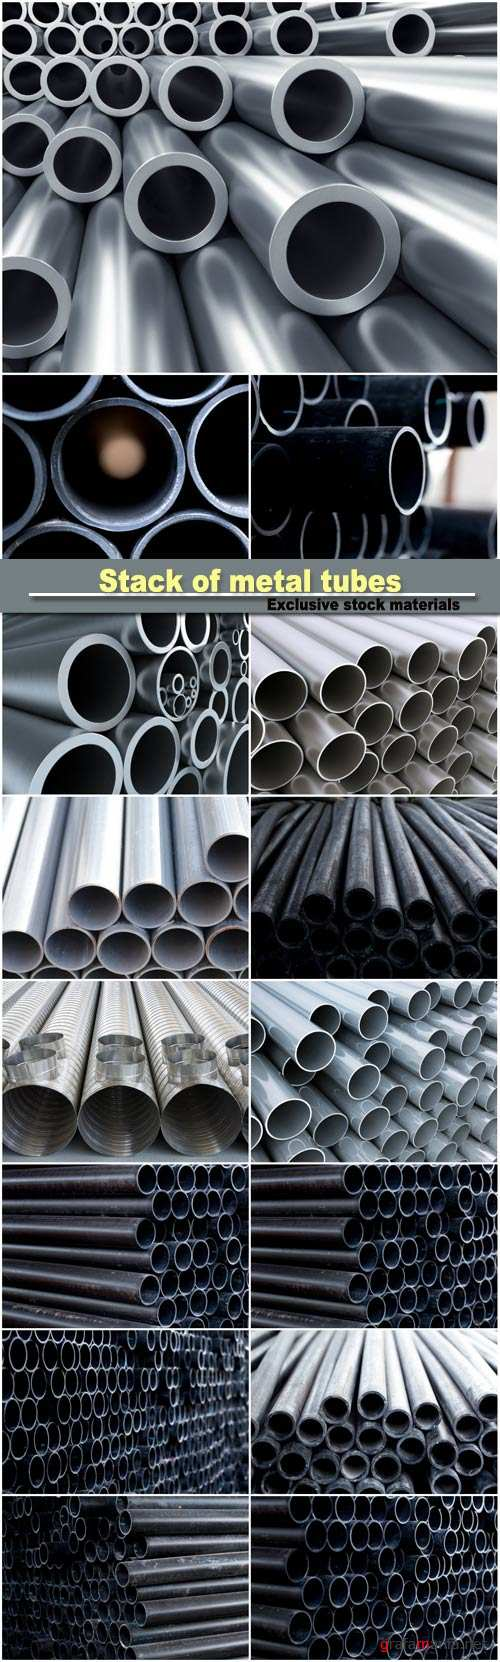 Stack of metal tubes, black pipe tube, industry quality background